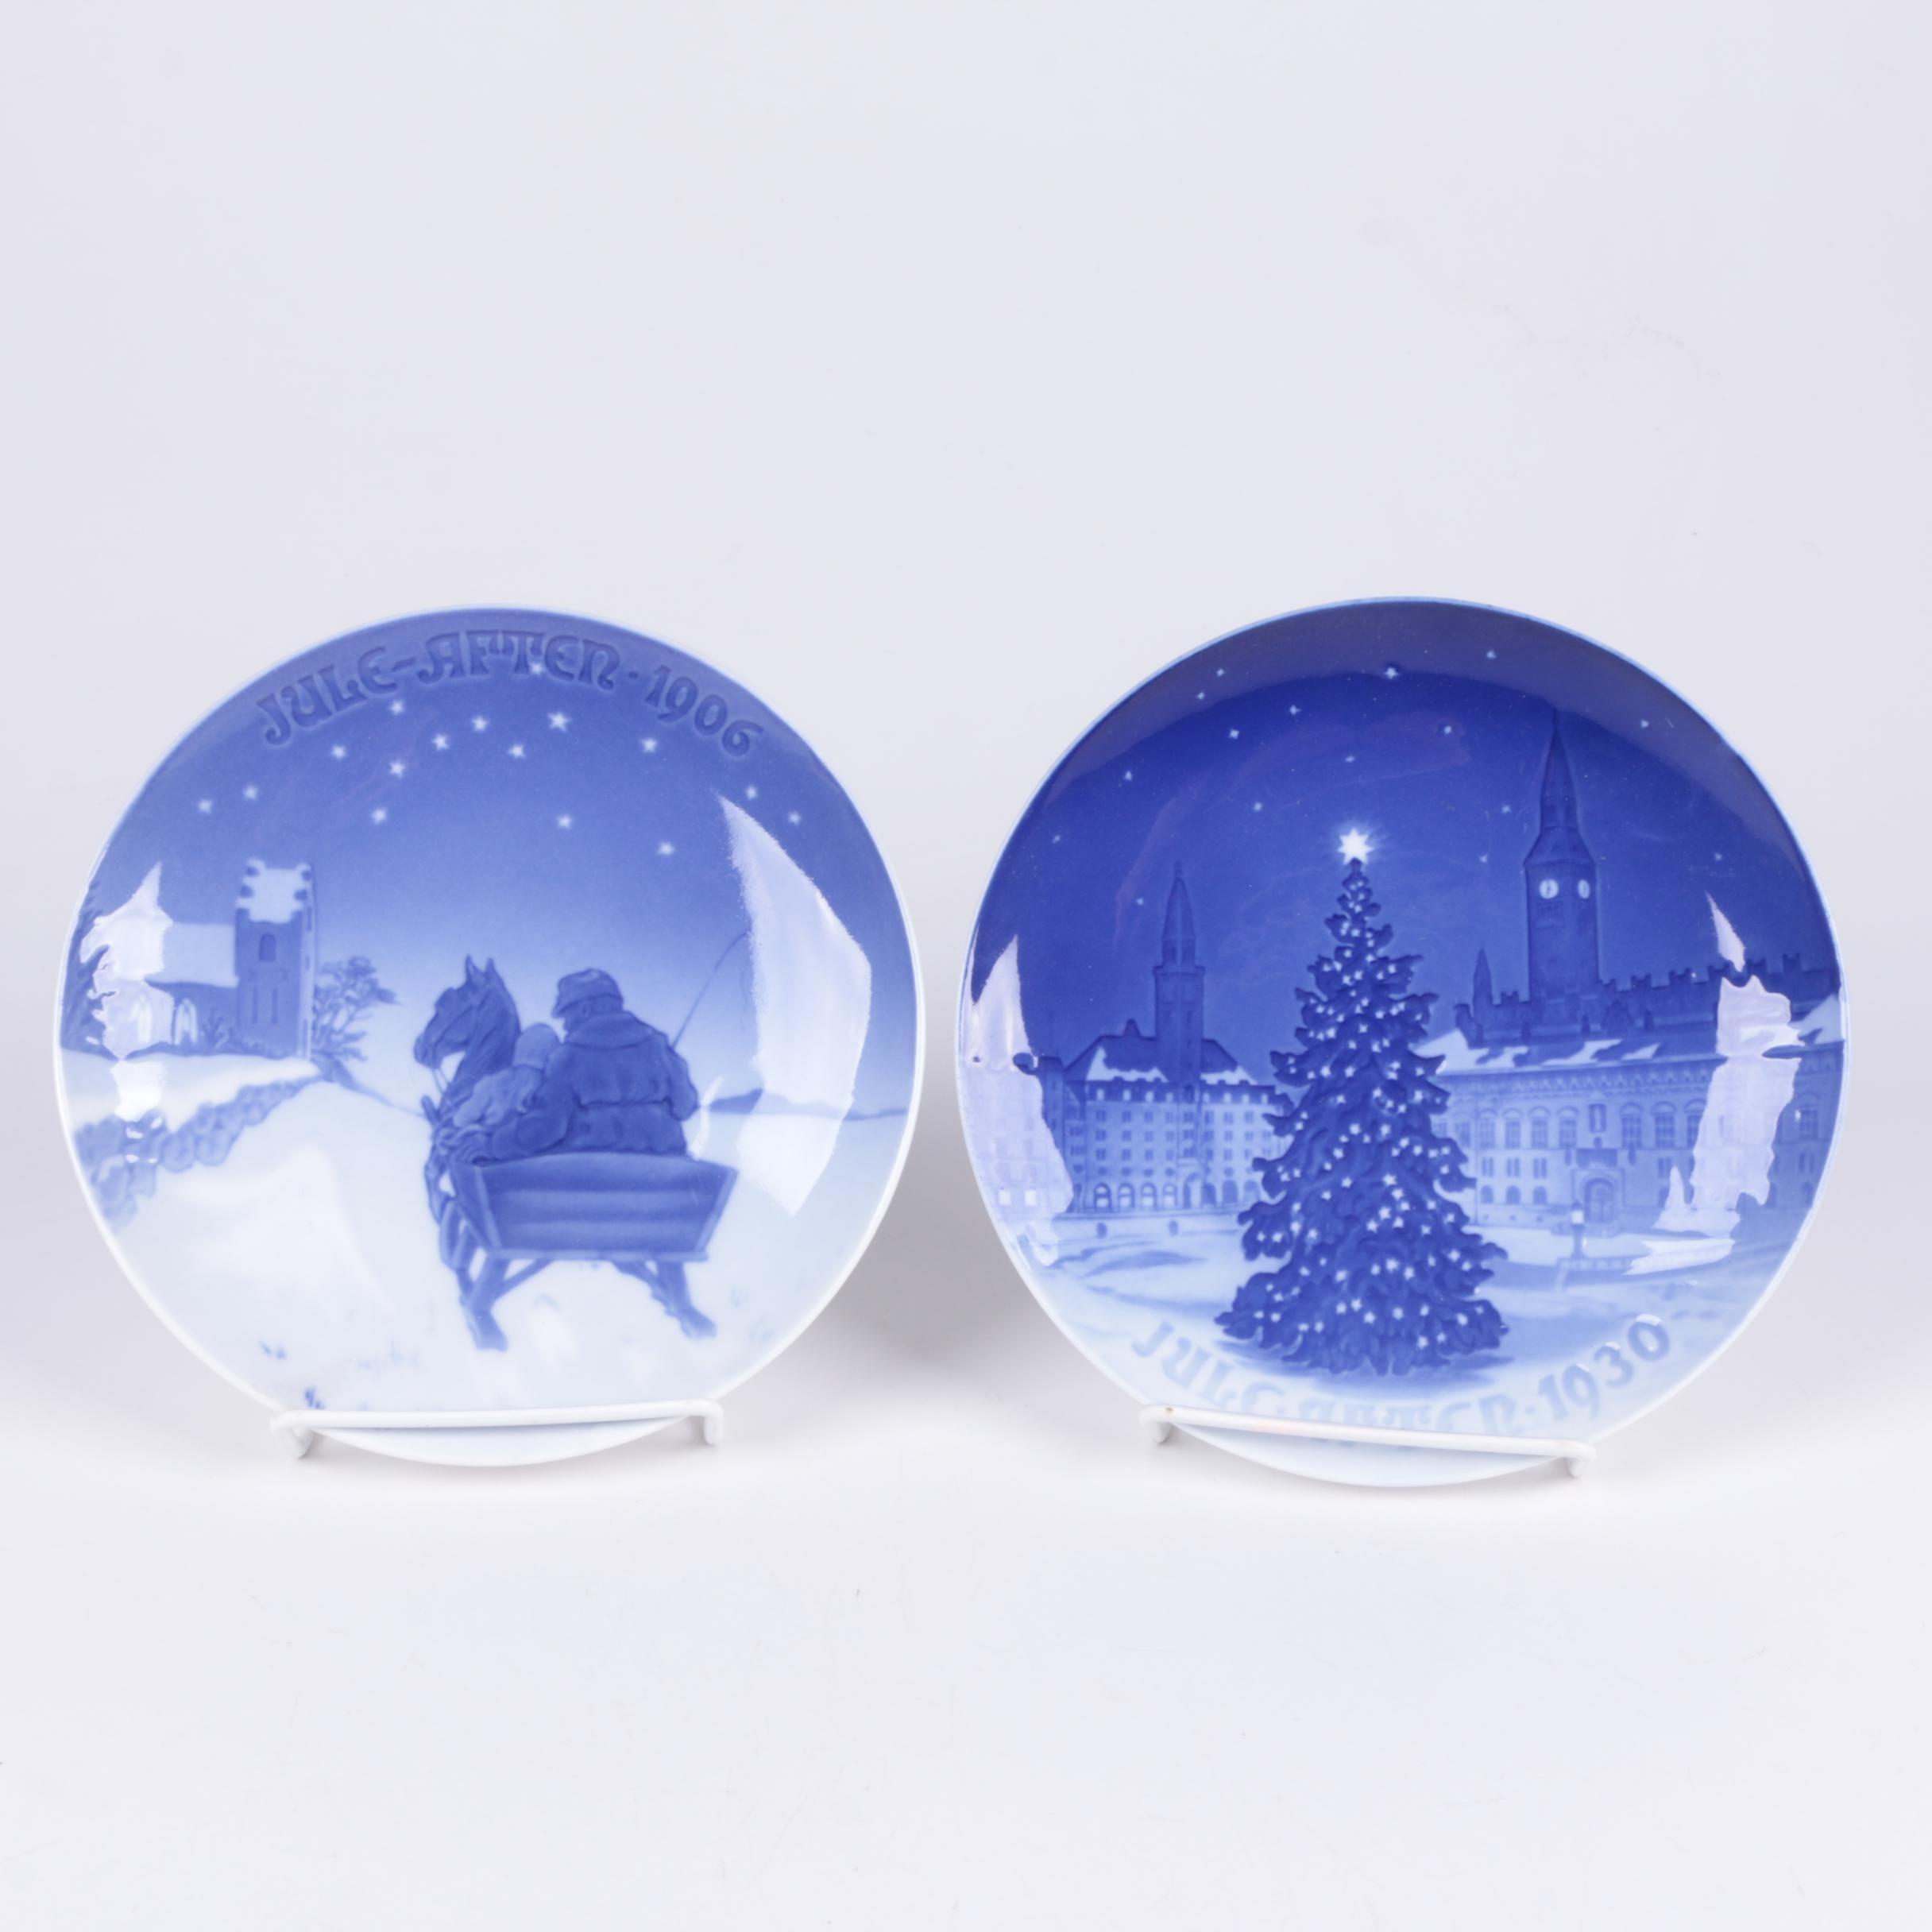 Bing & Grondahl Porcelain Commemorative Christmas Plates